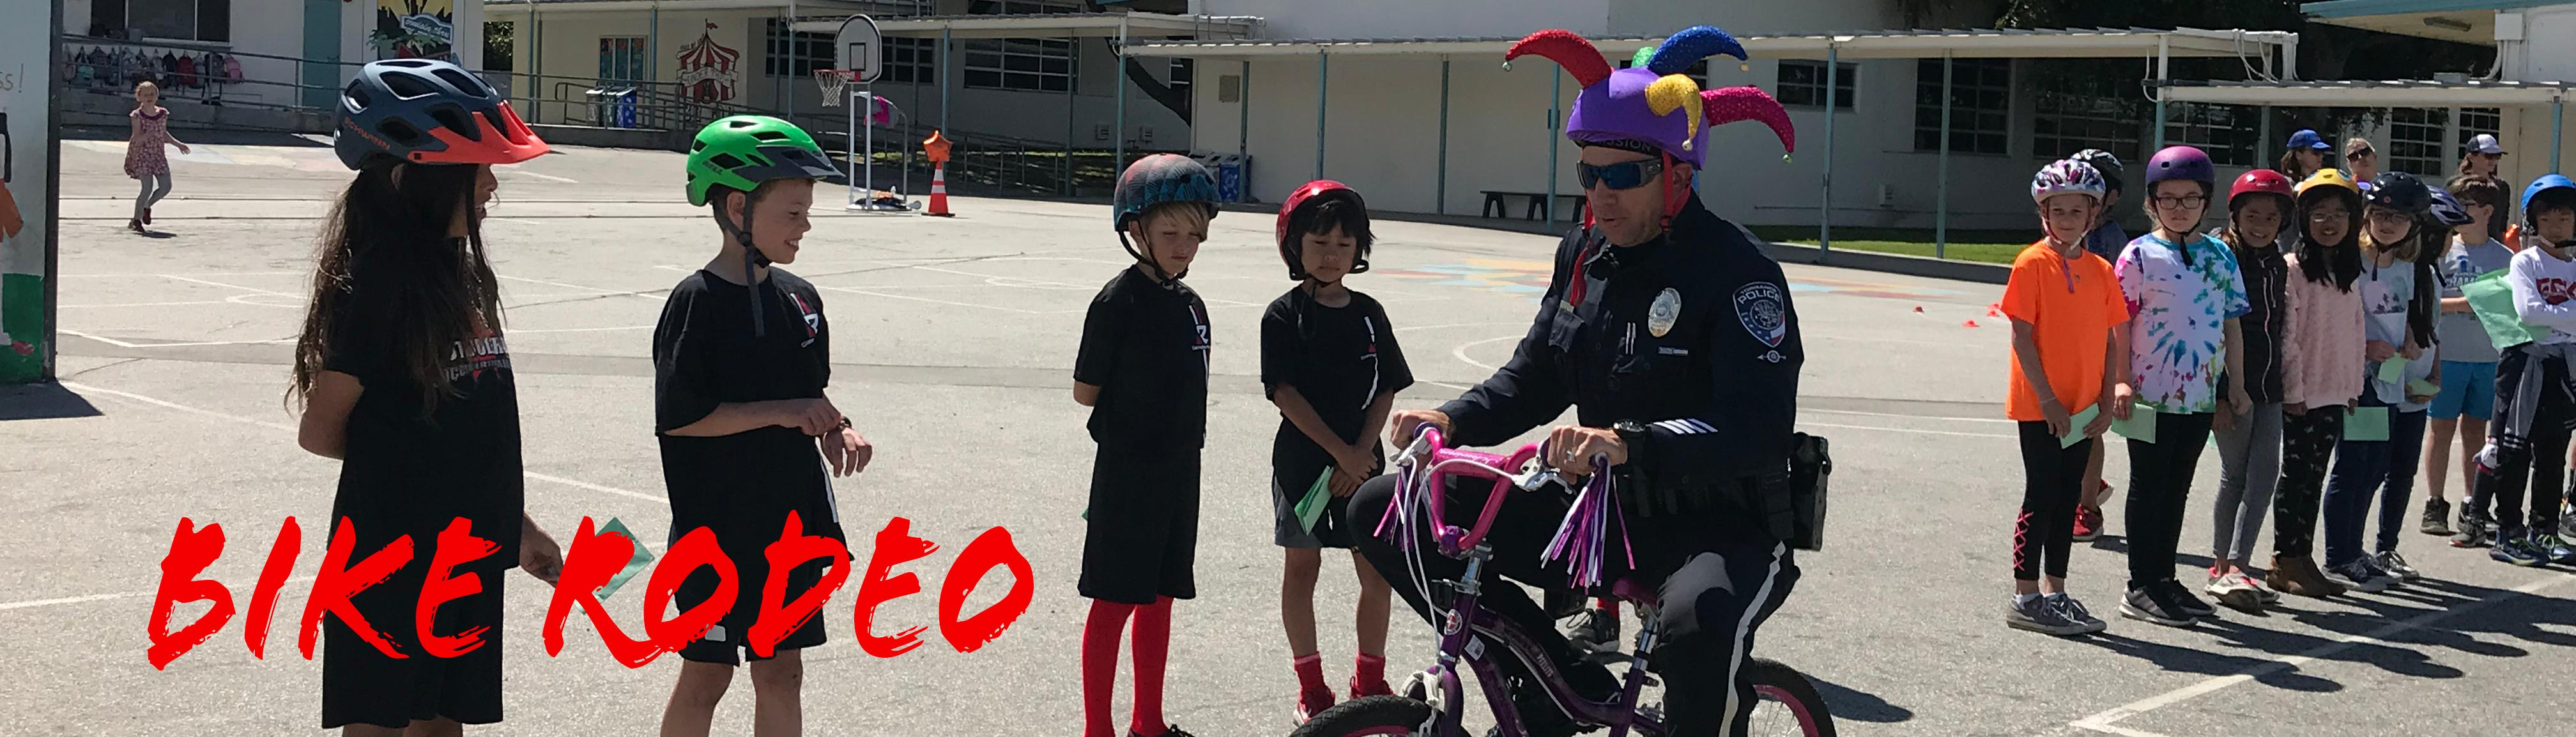 Bike Rodeo Demonstration with Jester